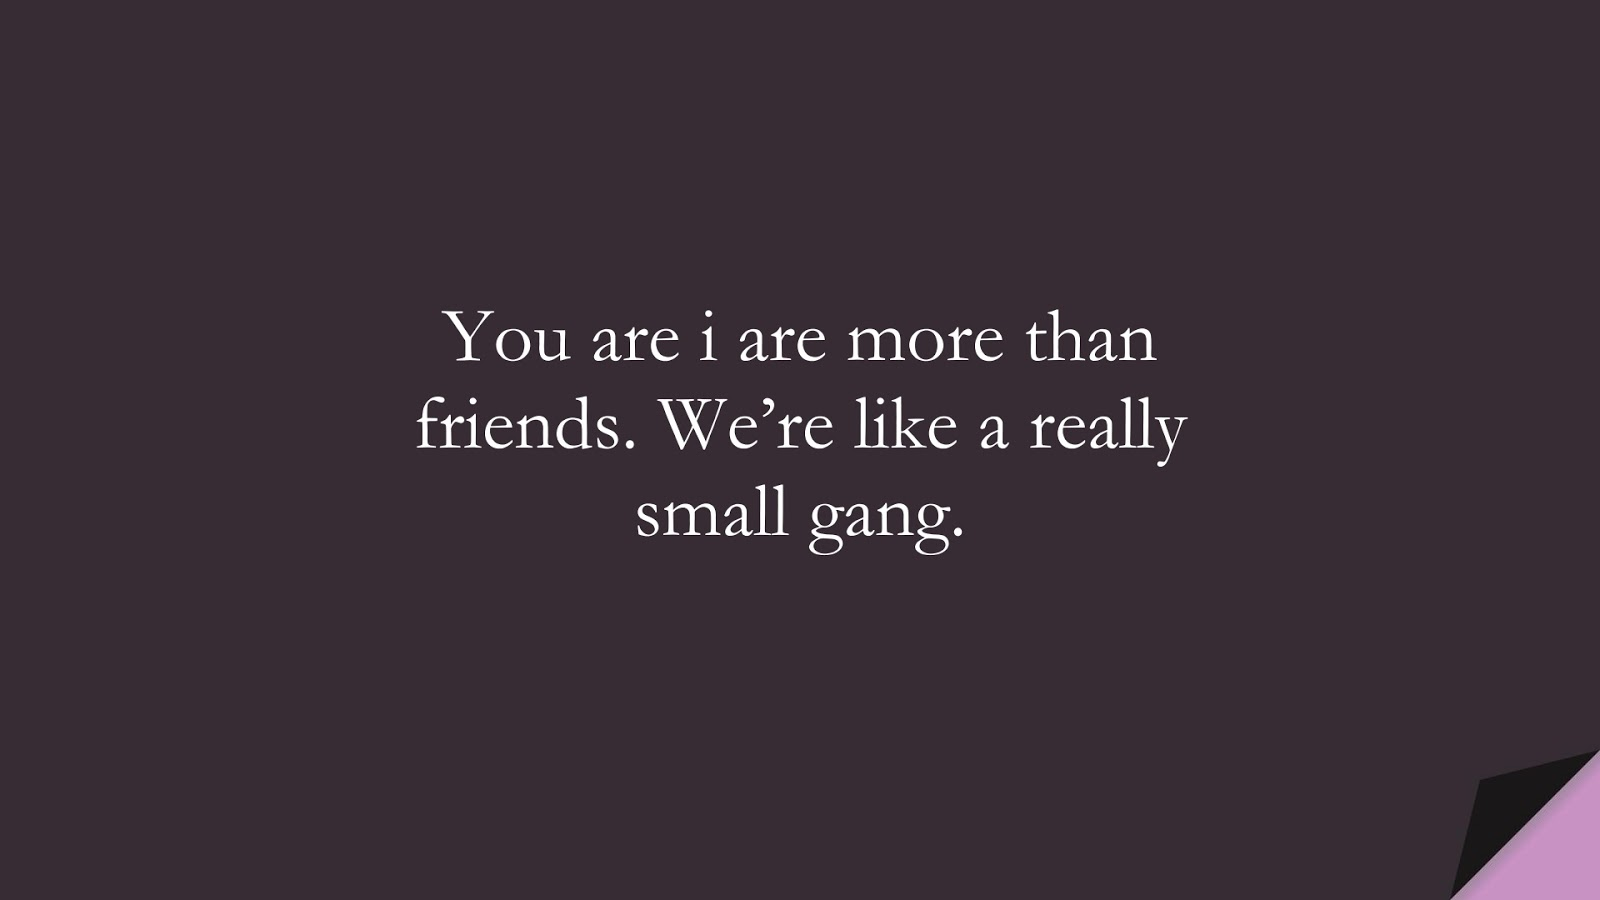 You are i are more than friends. We're like a really small gang.FALSE